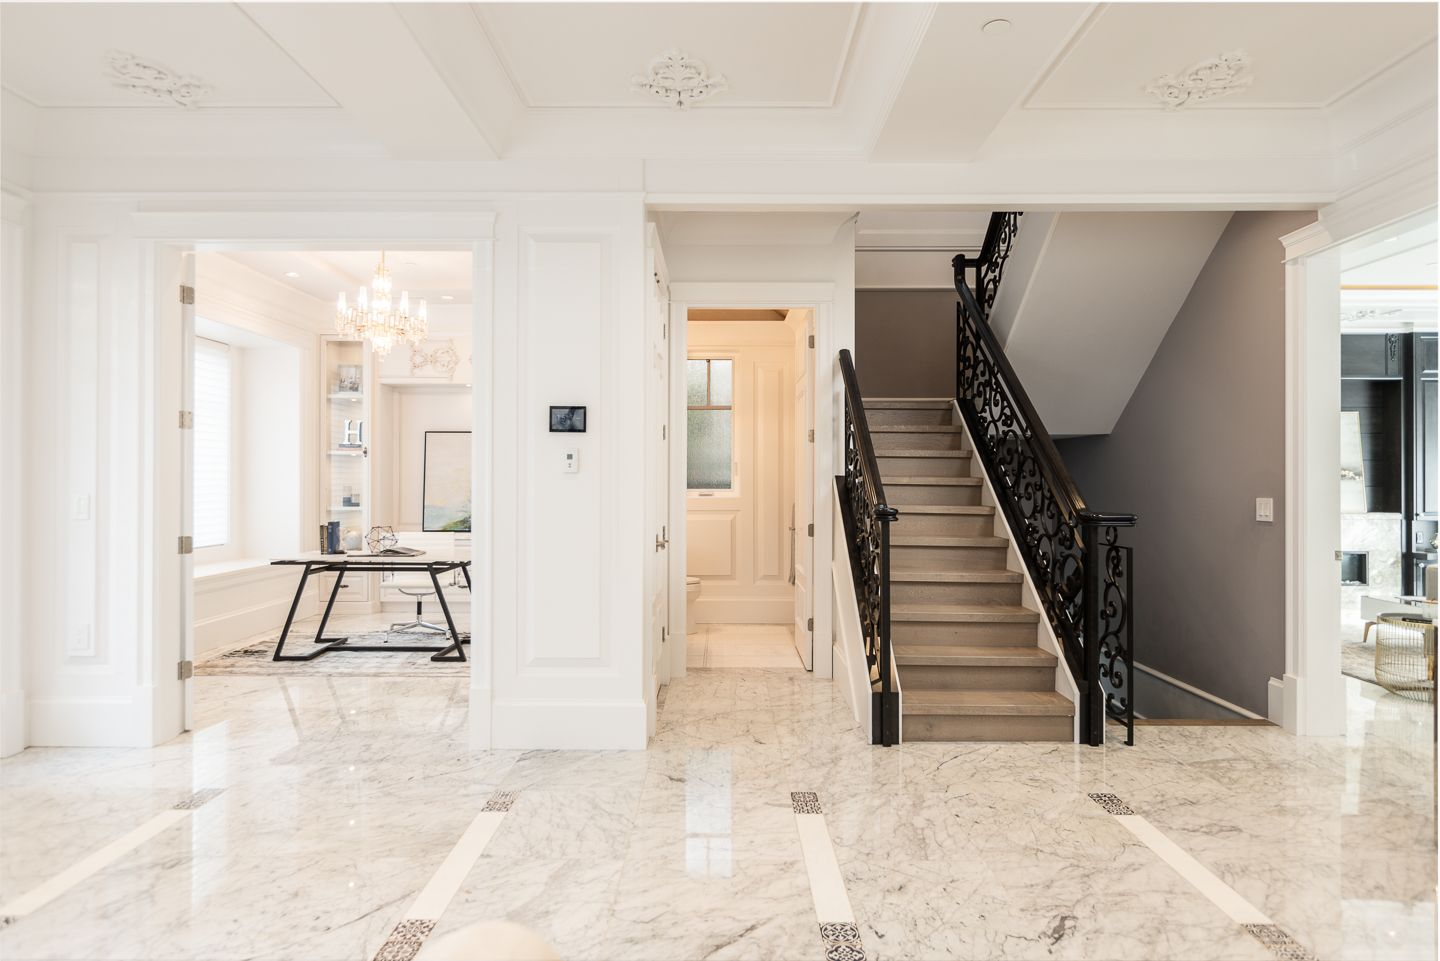 Photo 31: Photos: 1744 WEST 61ST AVE in VANCOUVER: South Granville House for sale (Vancouver West)  : MLS®# R2546980